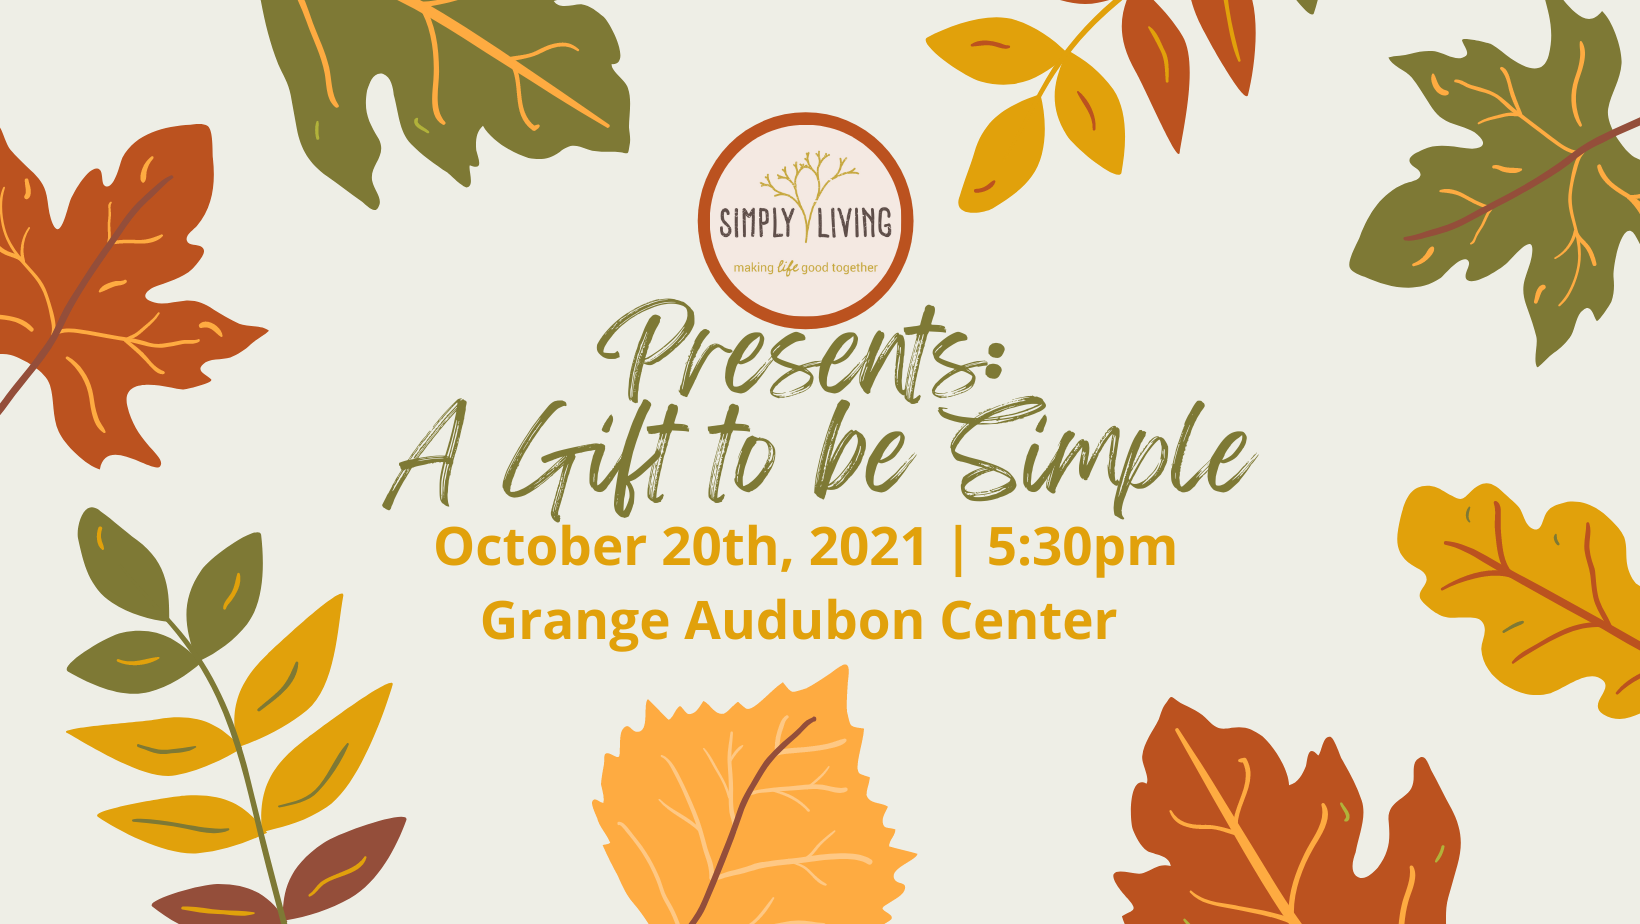 Join Us For Gift To Be Simple — Wednesday, October 20, 5:30 P.m.